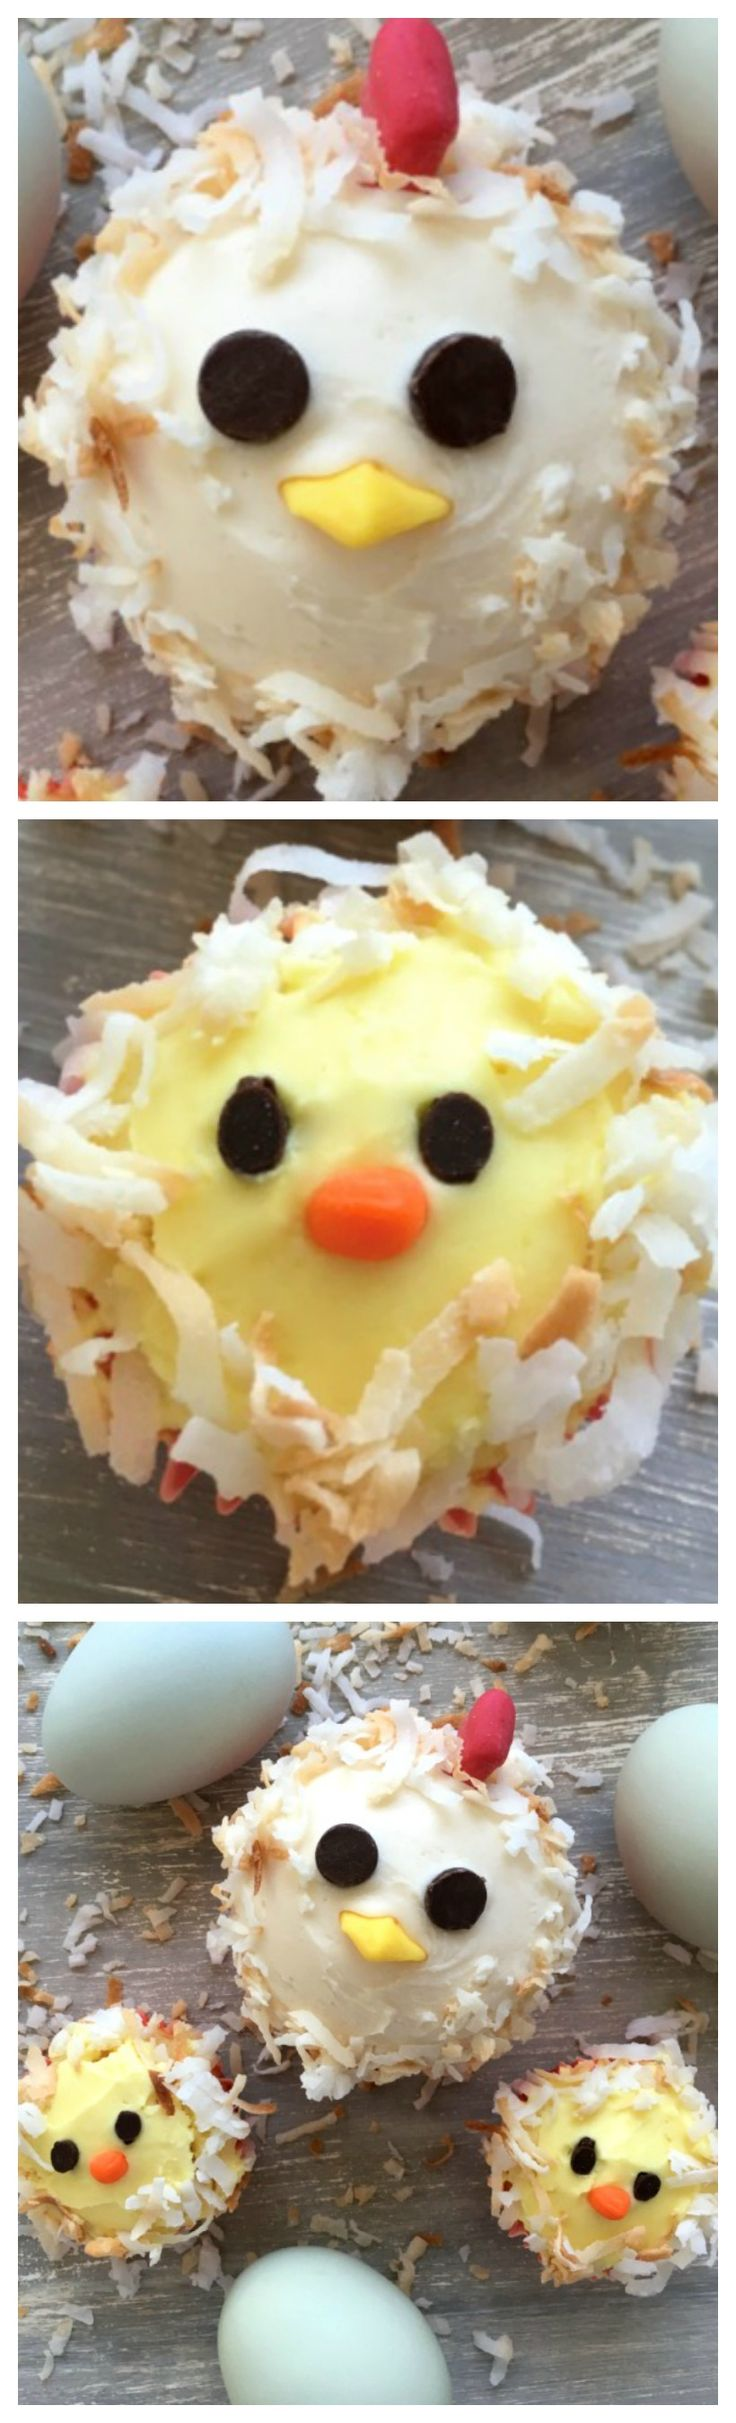 HOW TO MAKE CHICKEN CUPCAKES AND BABY CHICK CUPCAKES ~ CUTE AND TASTY.